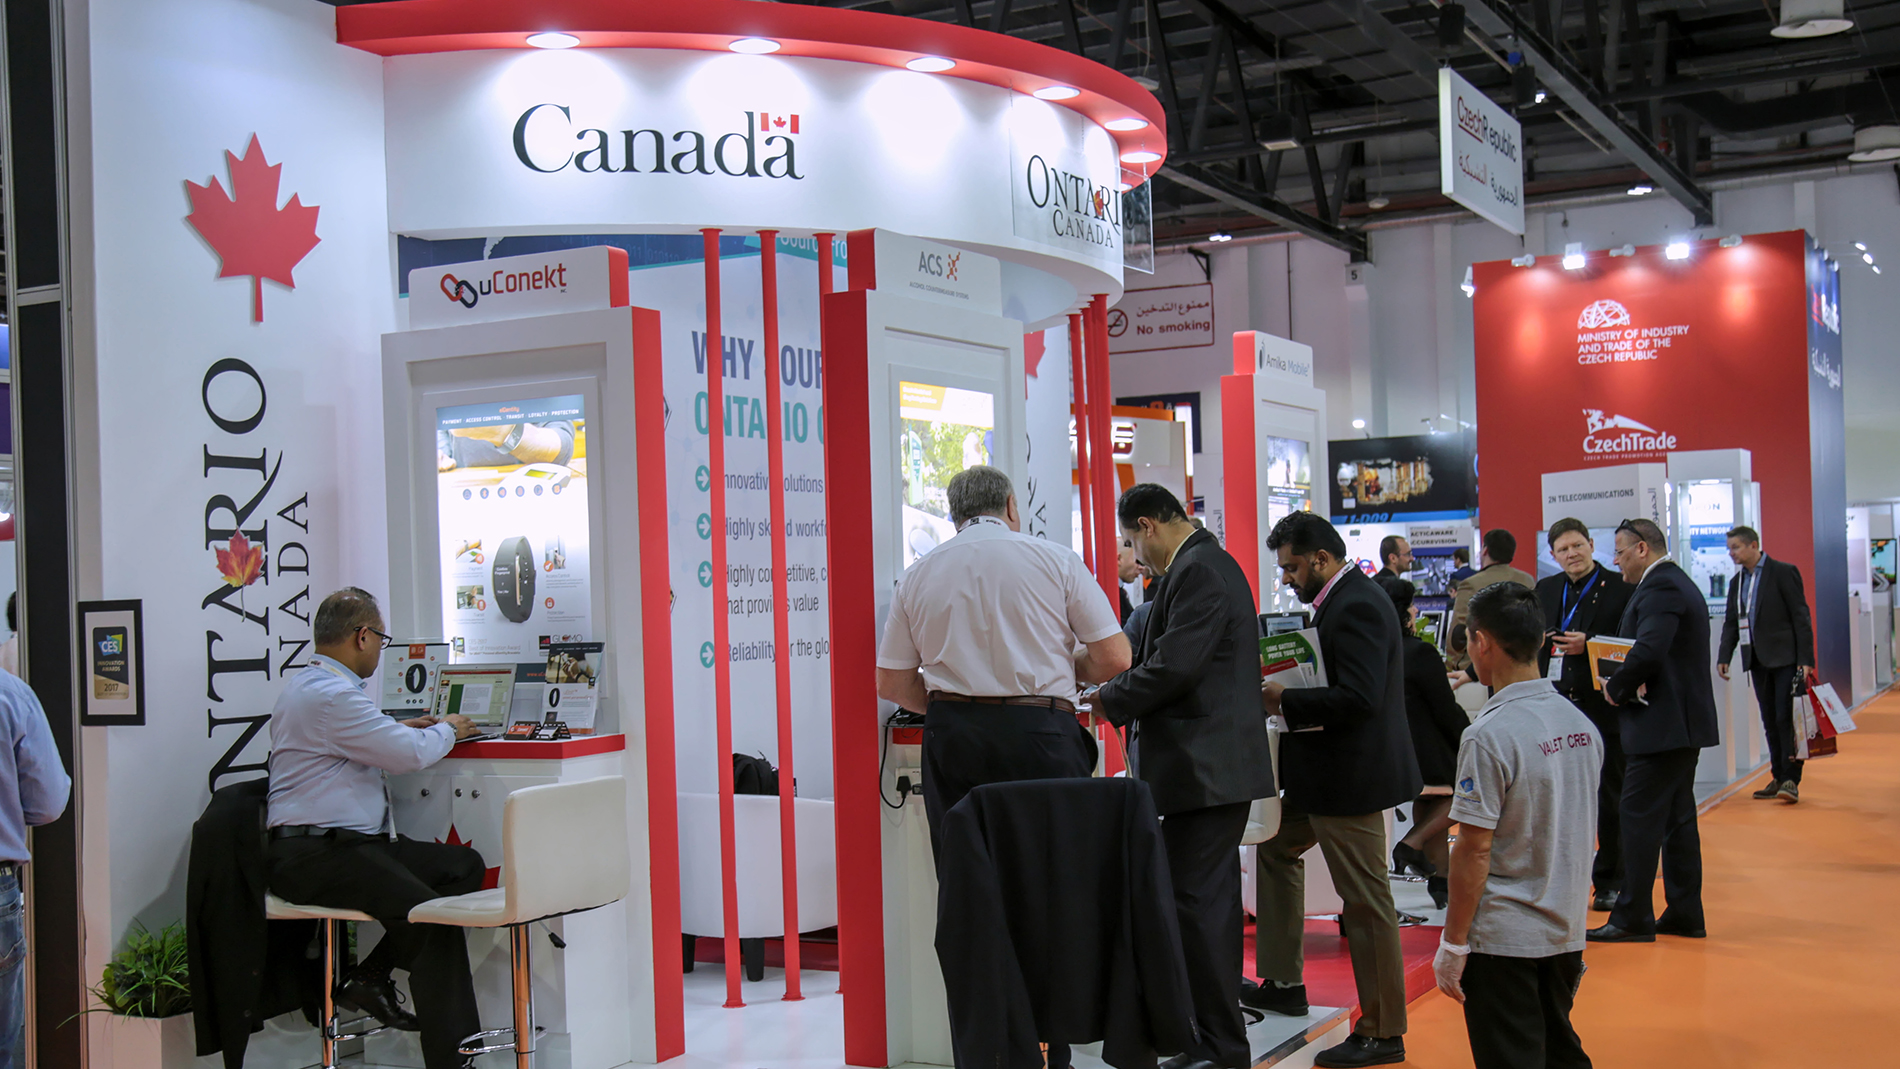 Canadian country pavilion at Intersec